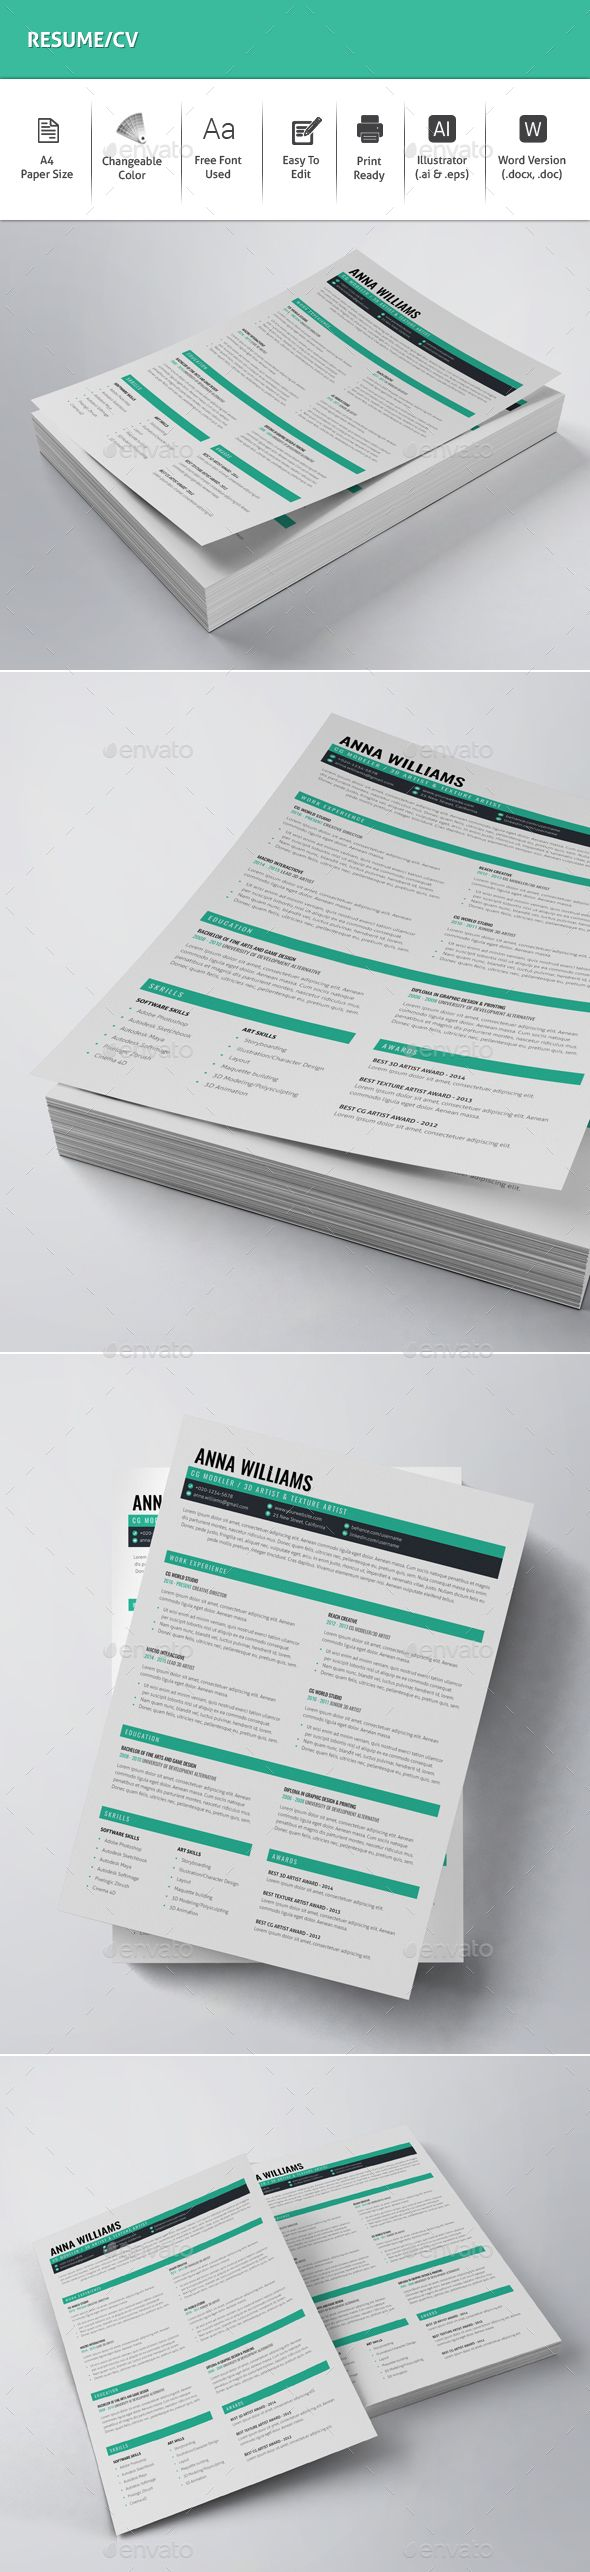 Pin by best Graphic Design on Resume Templates Invoice